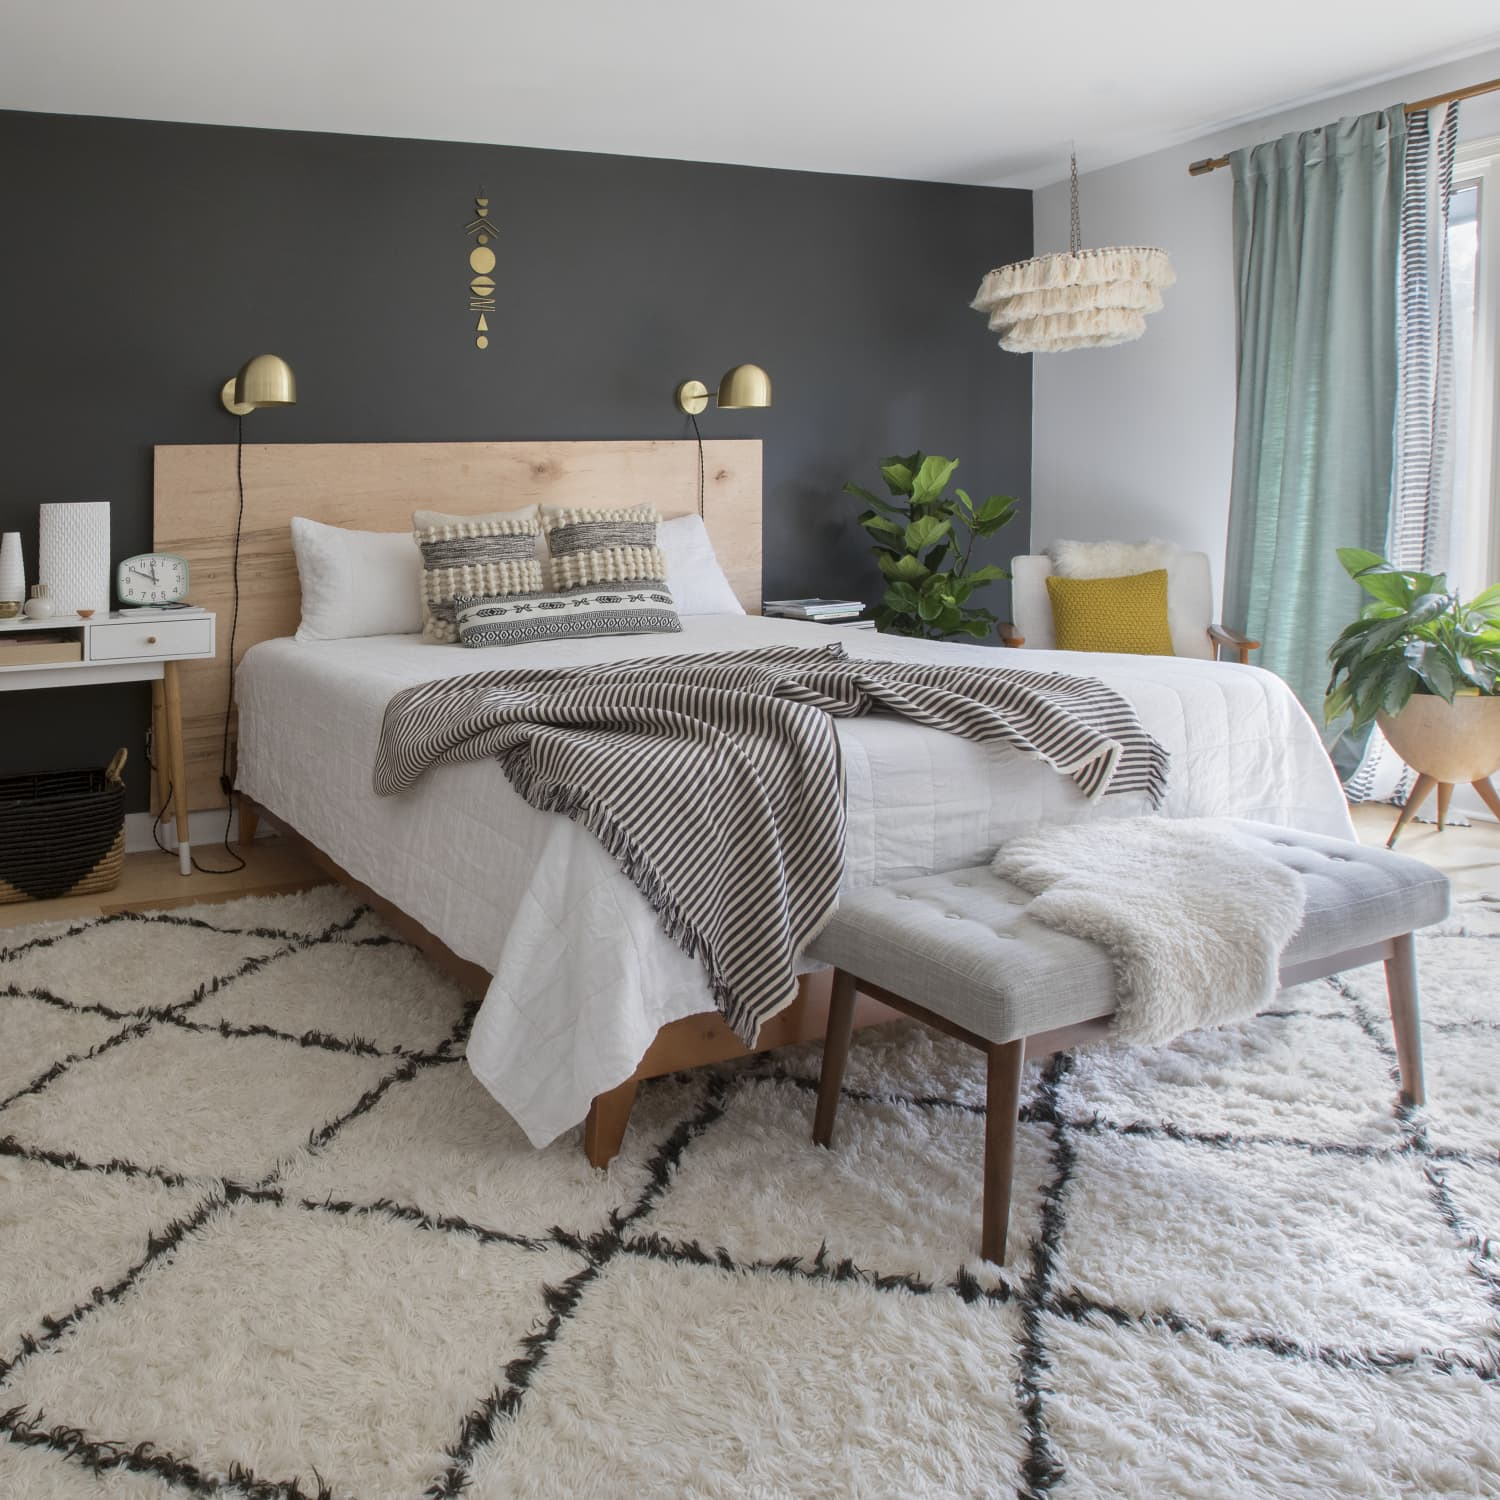 Tassel Trend How To Decorate With Tassels Apartment Therapy